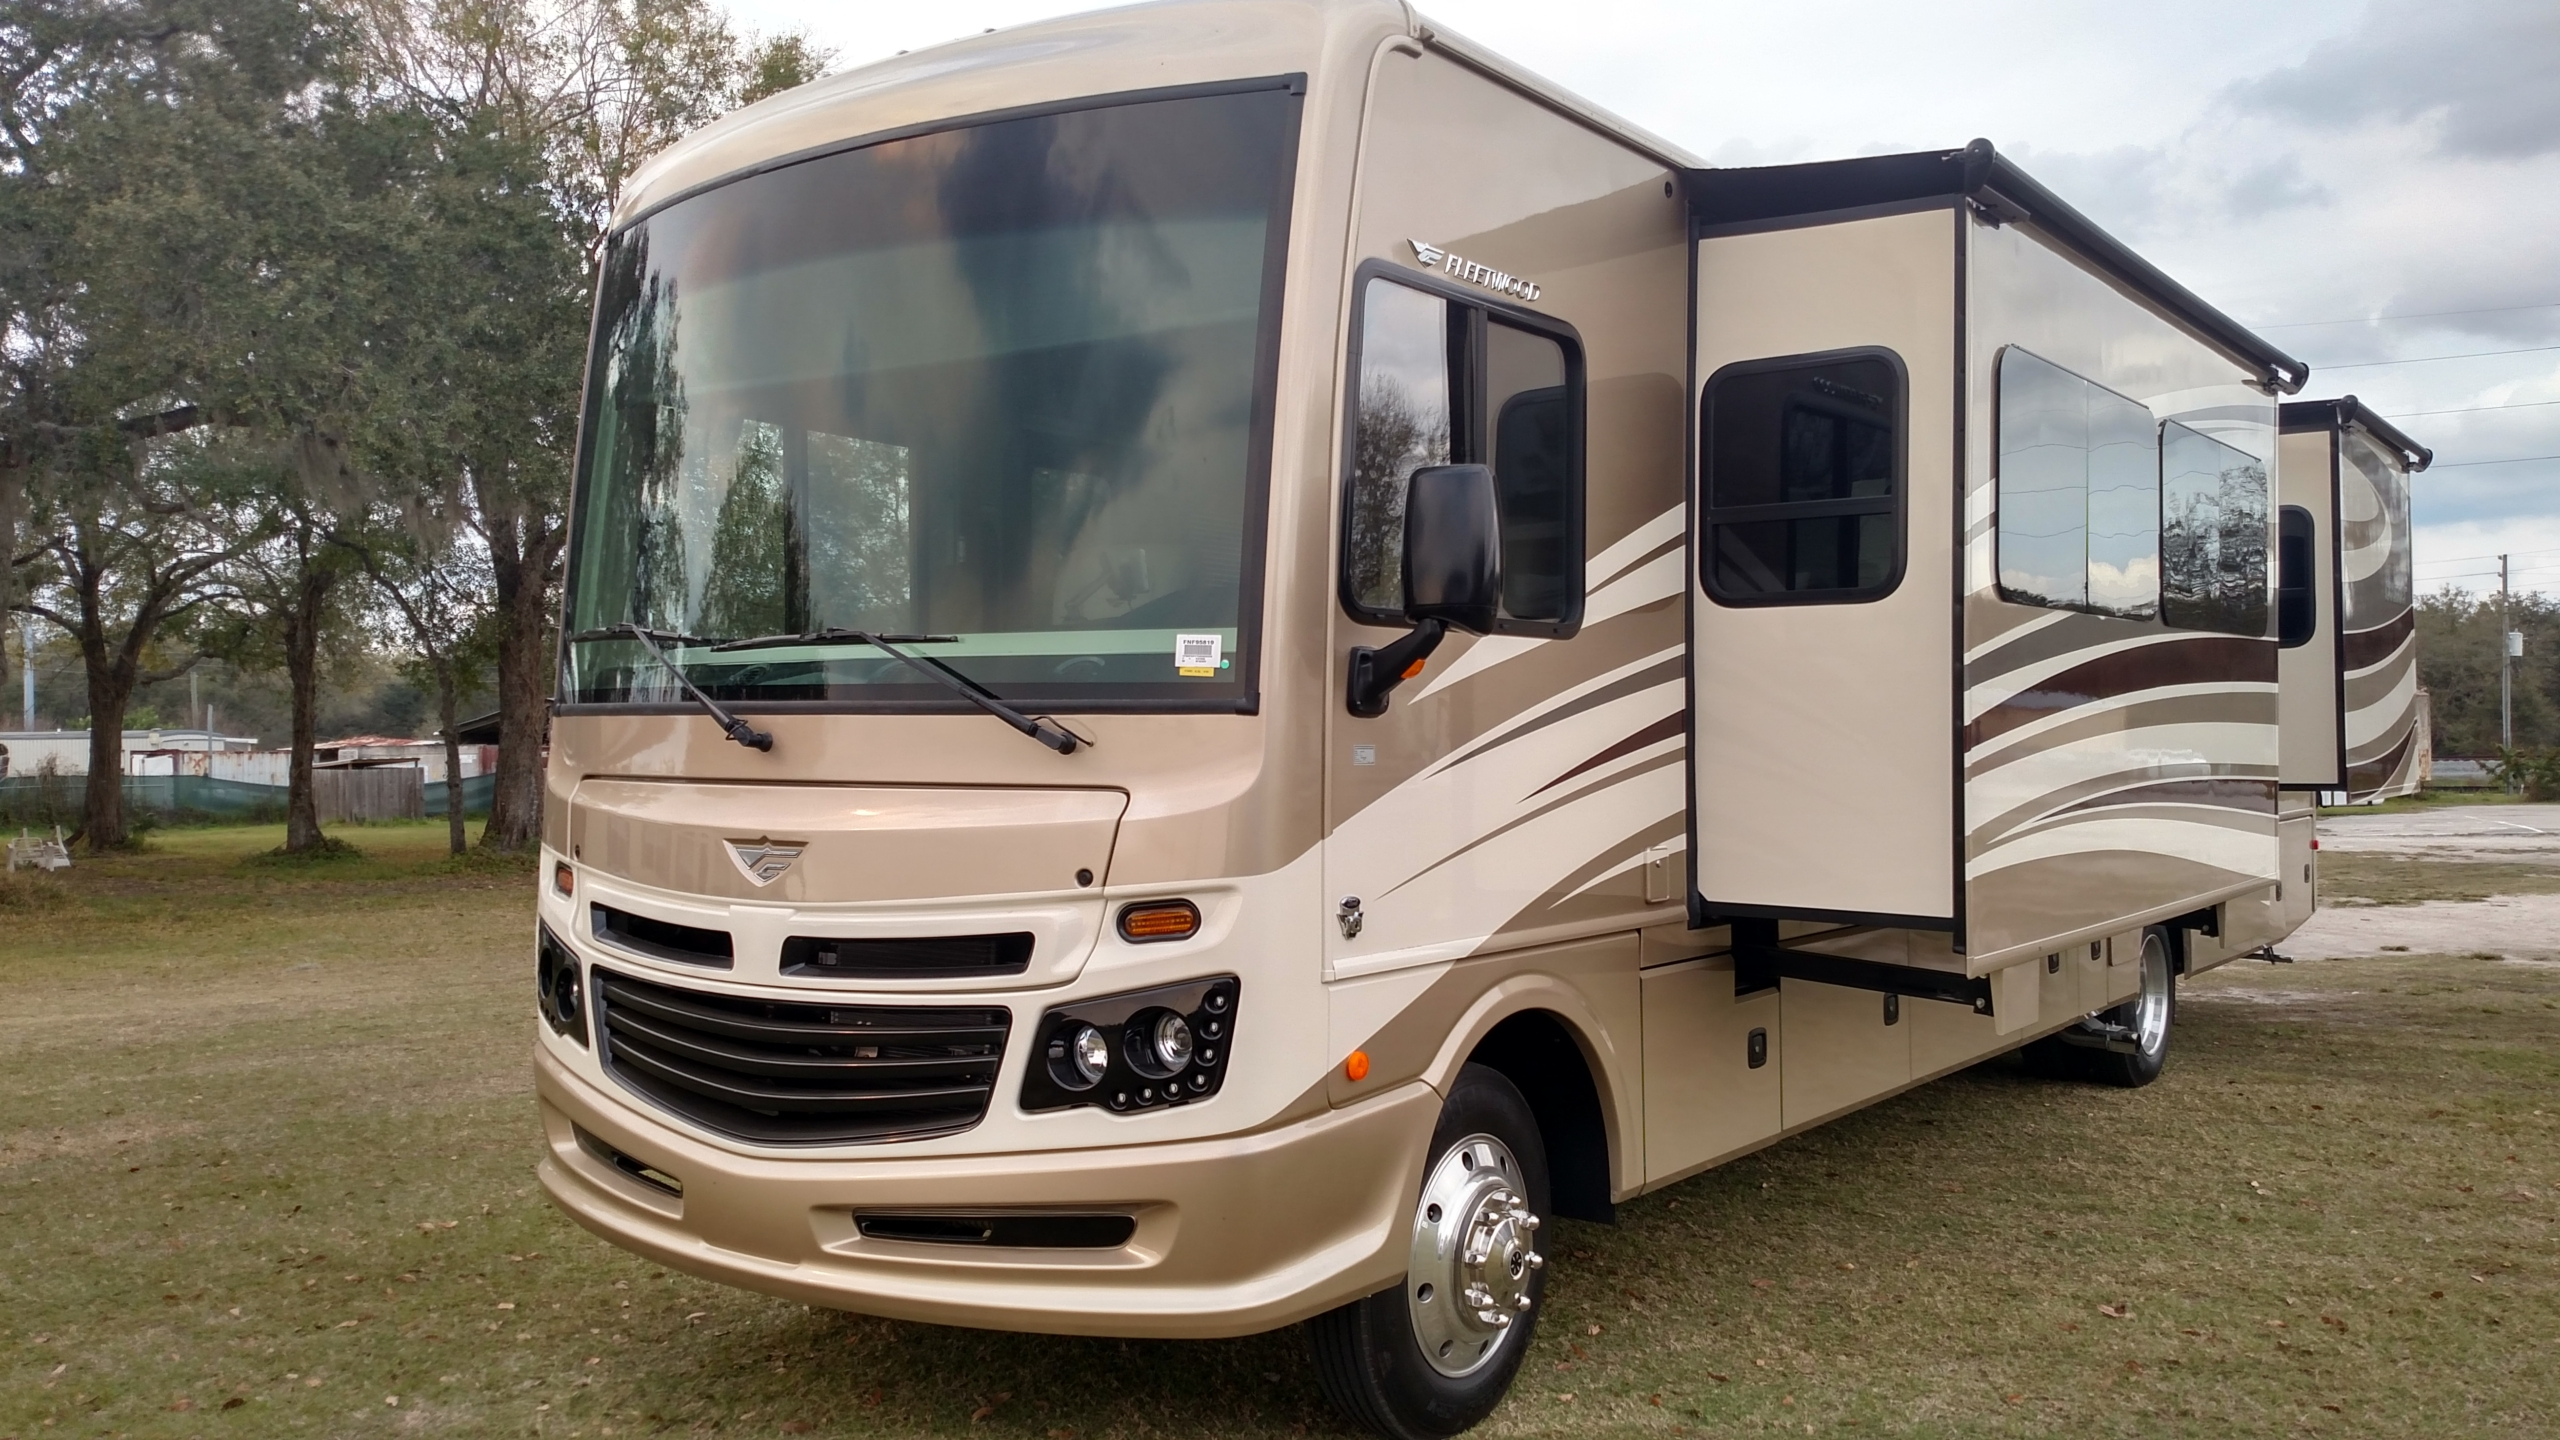 4 Things To Consider When Choosing an RV For Your Next Trip